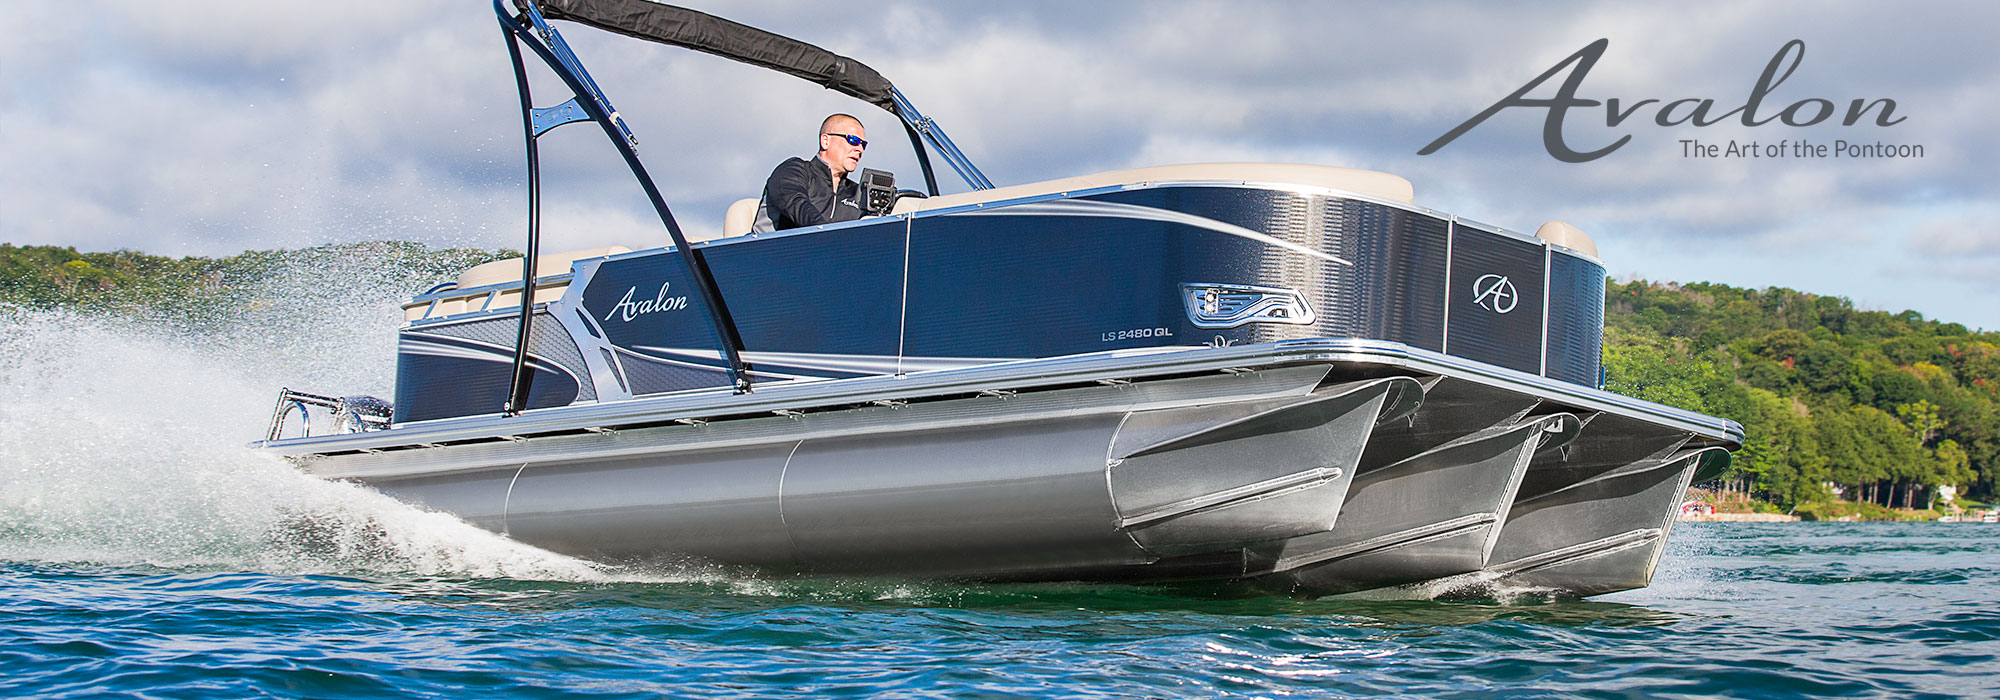 Avalon LS 2480 GL pontoon cruising